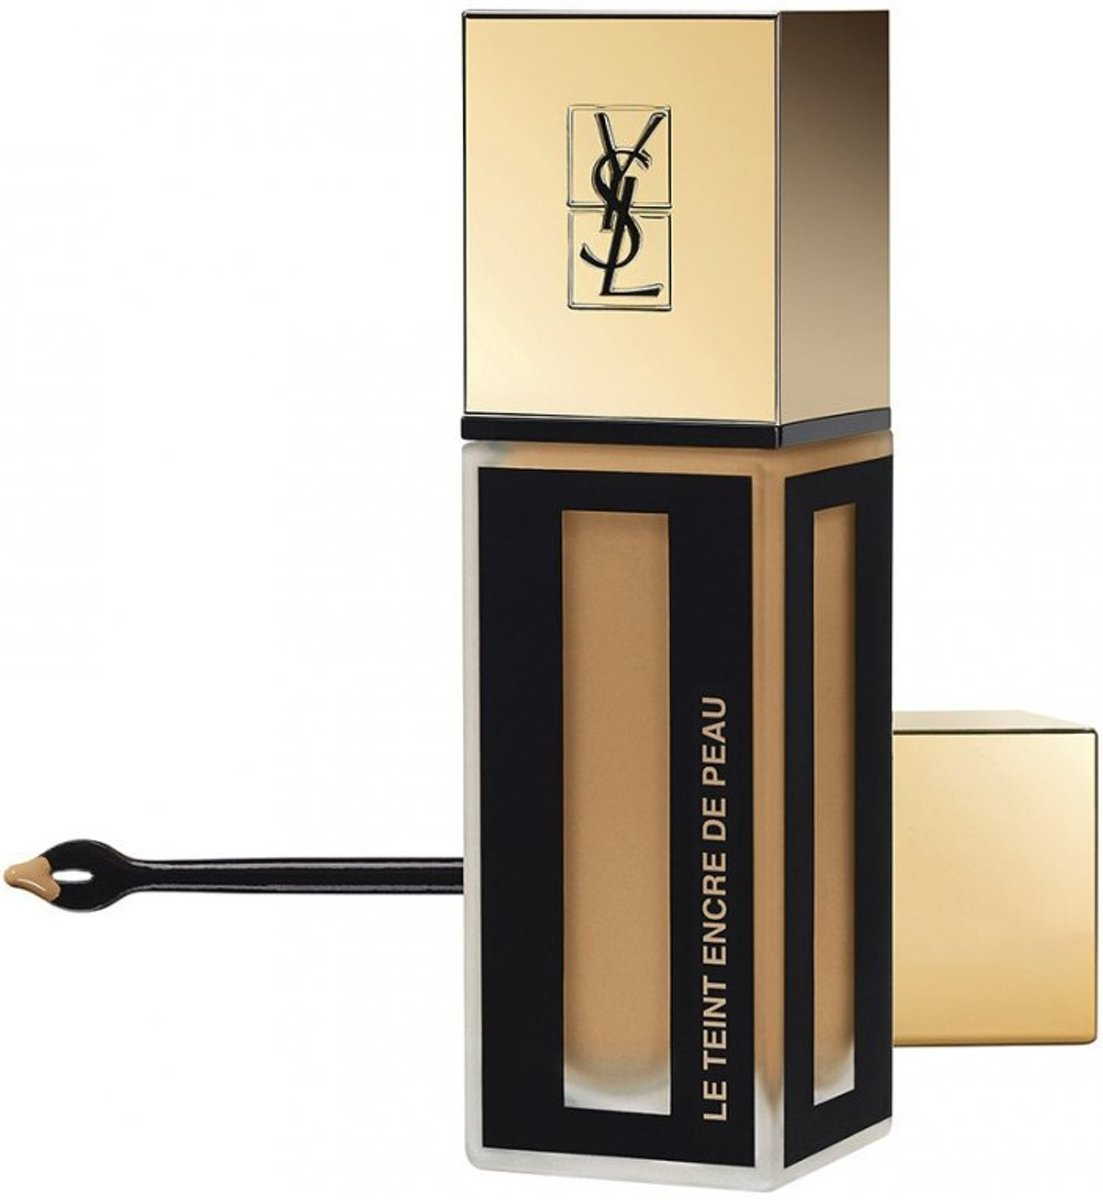 Yves Saint Laurent Encre De Peau Foundation 25 ml - BR50: Rosy beige